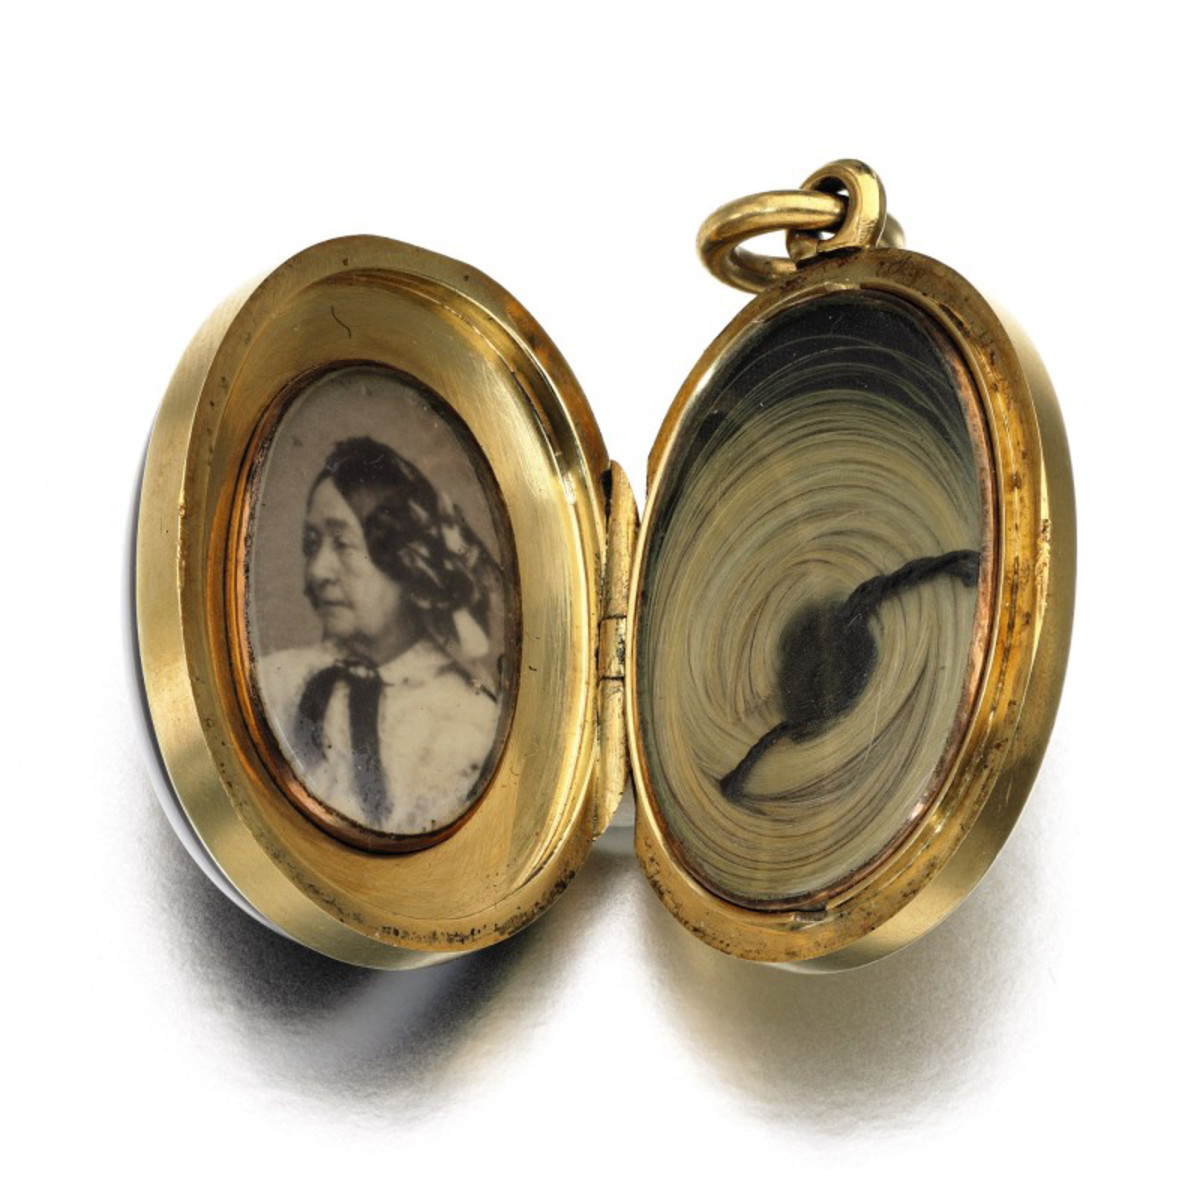 The miniature photograph of the Duchess of Kent and lock of hair.